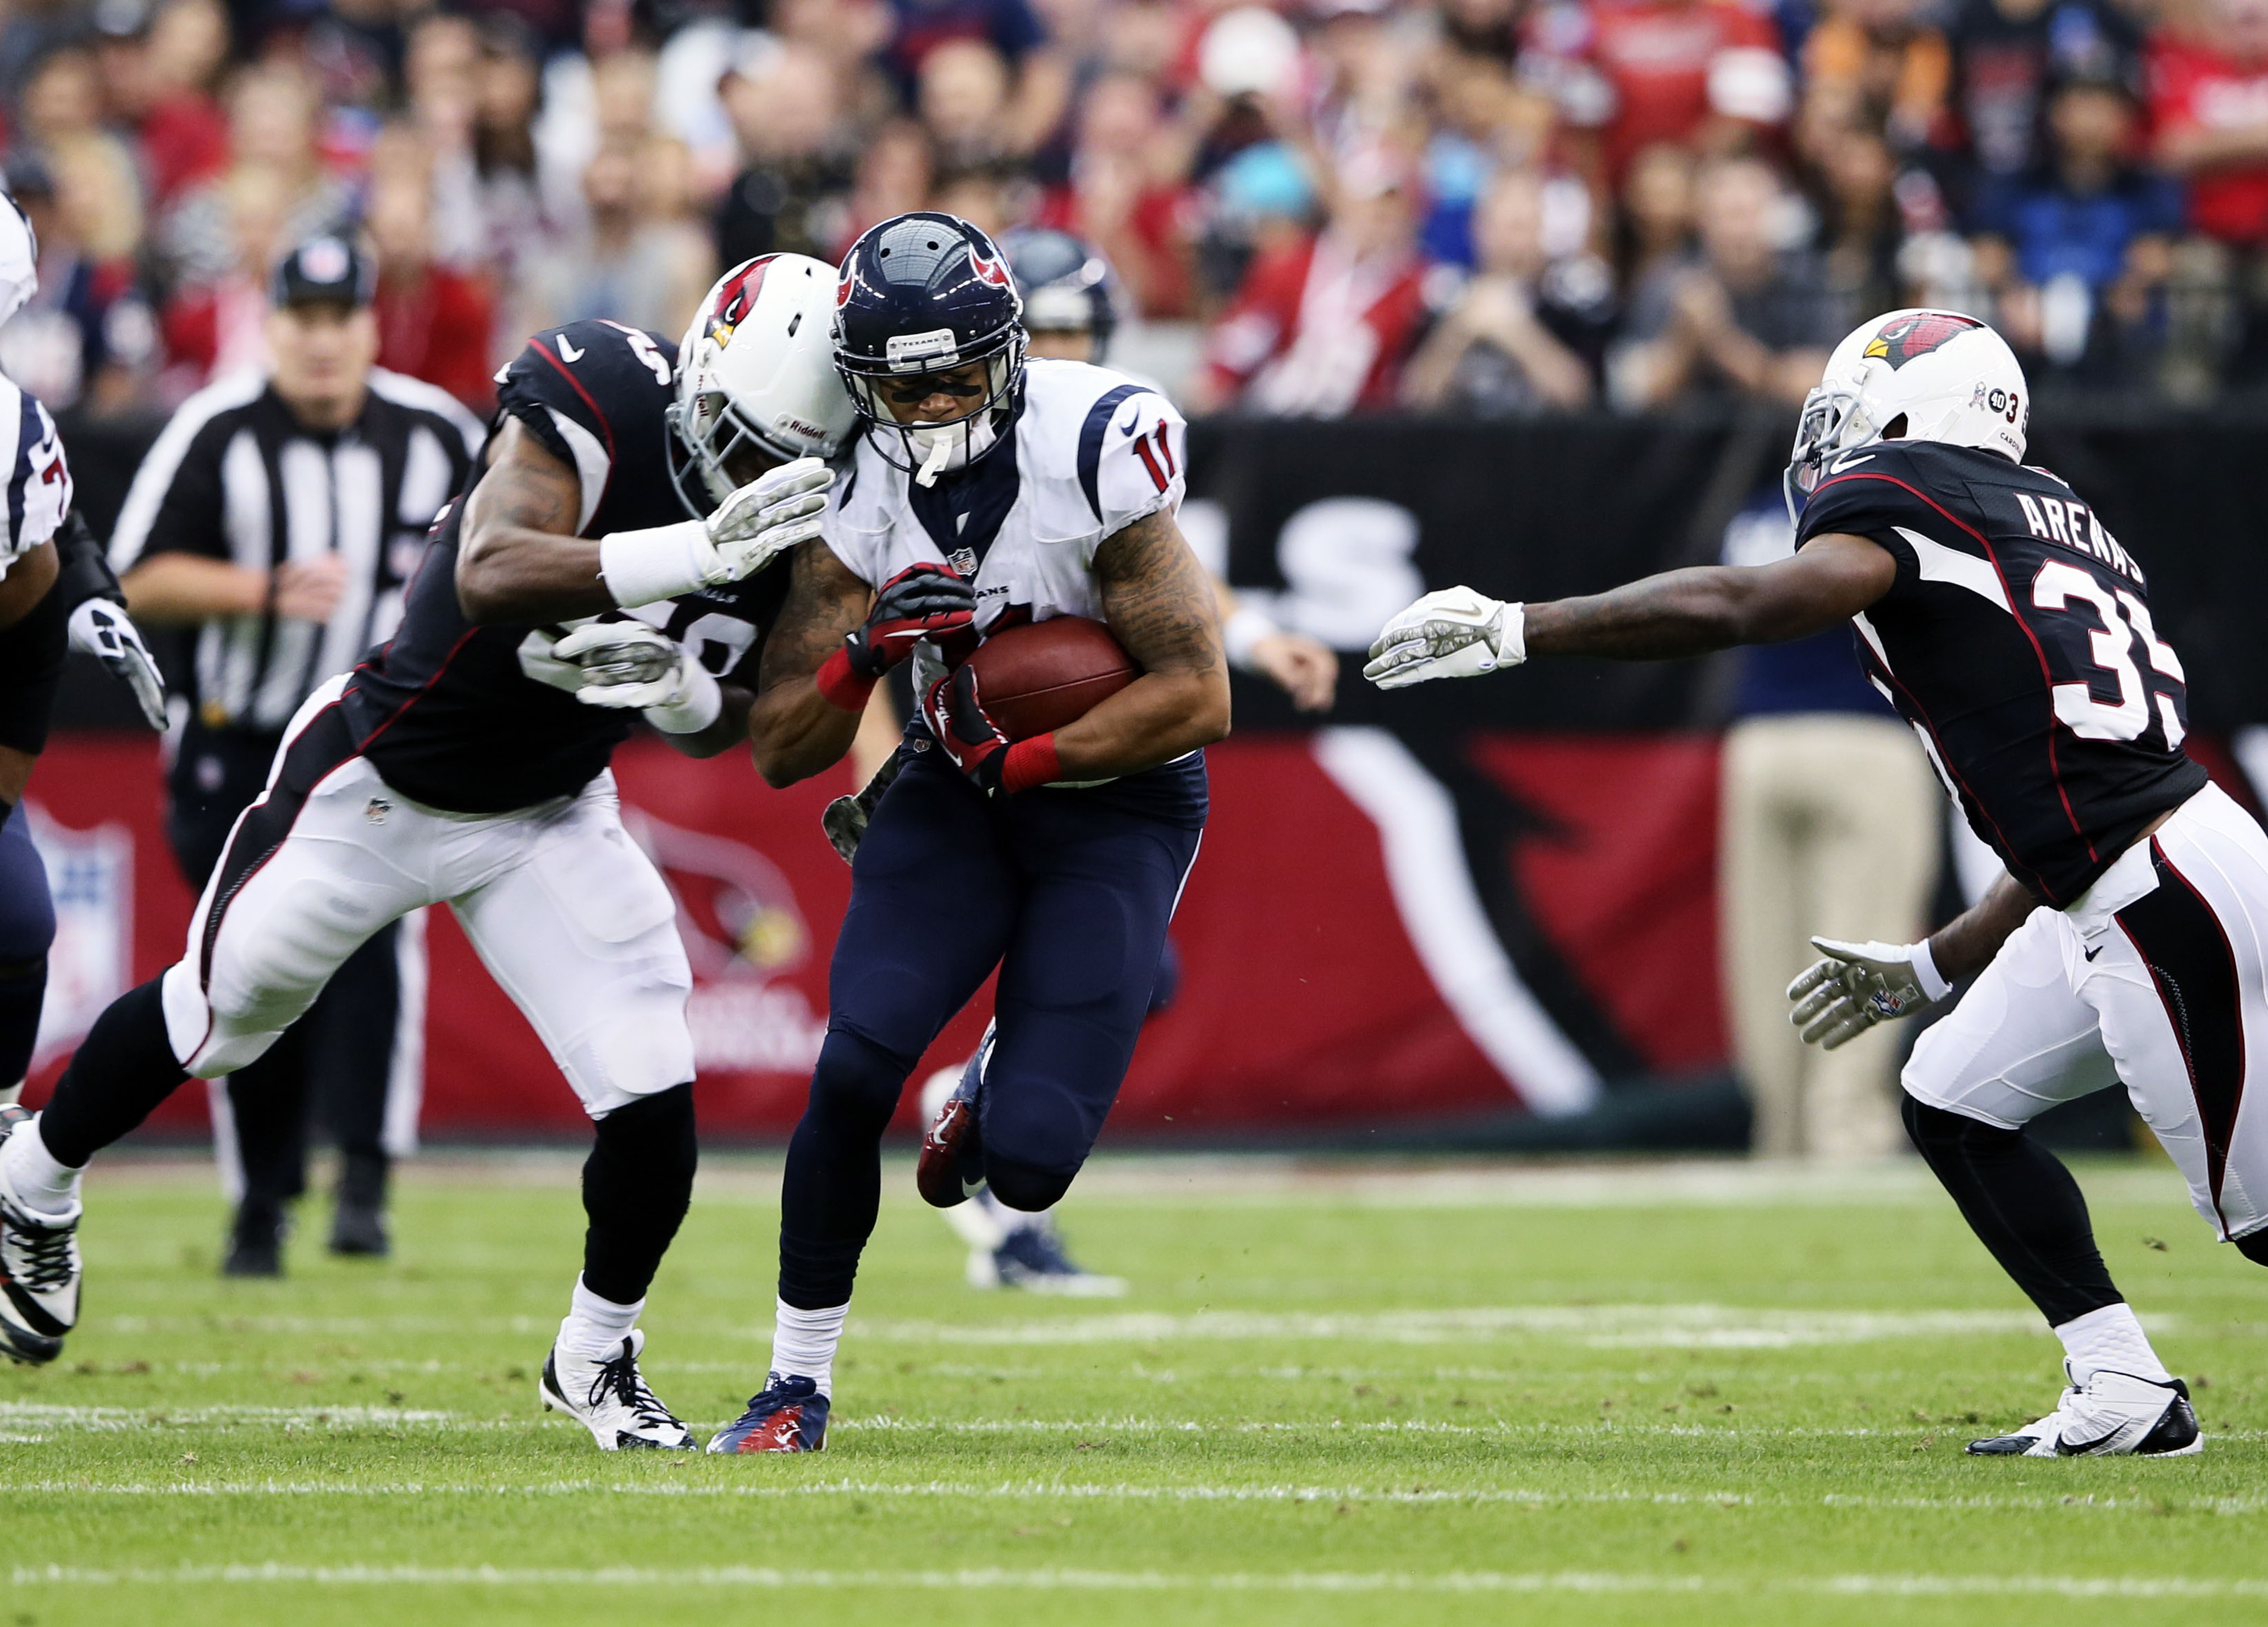 DeVier Posey is emerging as a reliable pass catcher for the Texans.